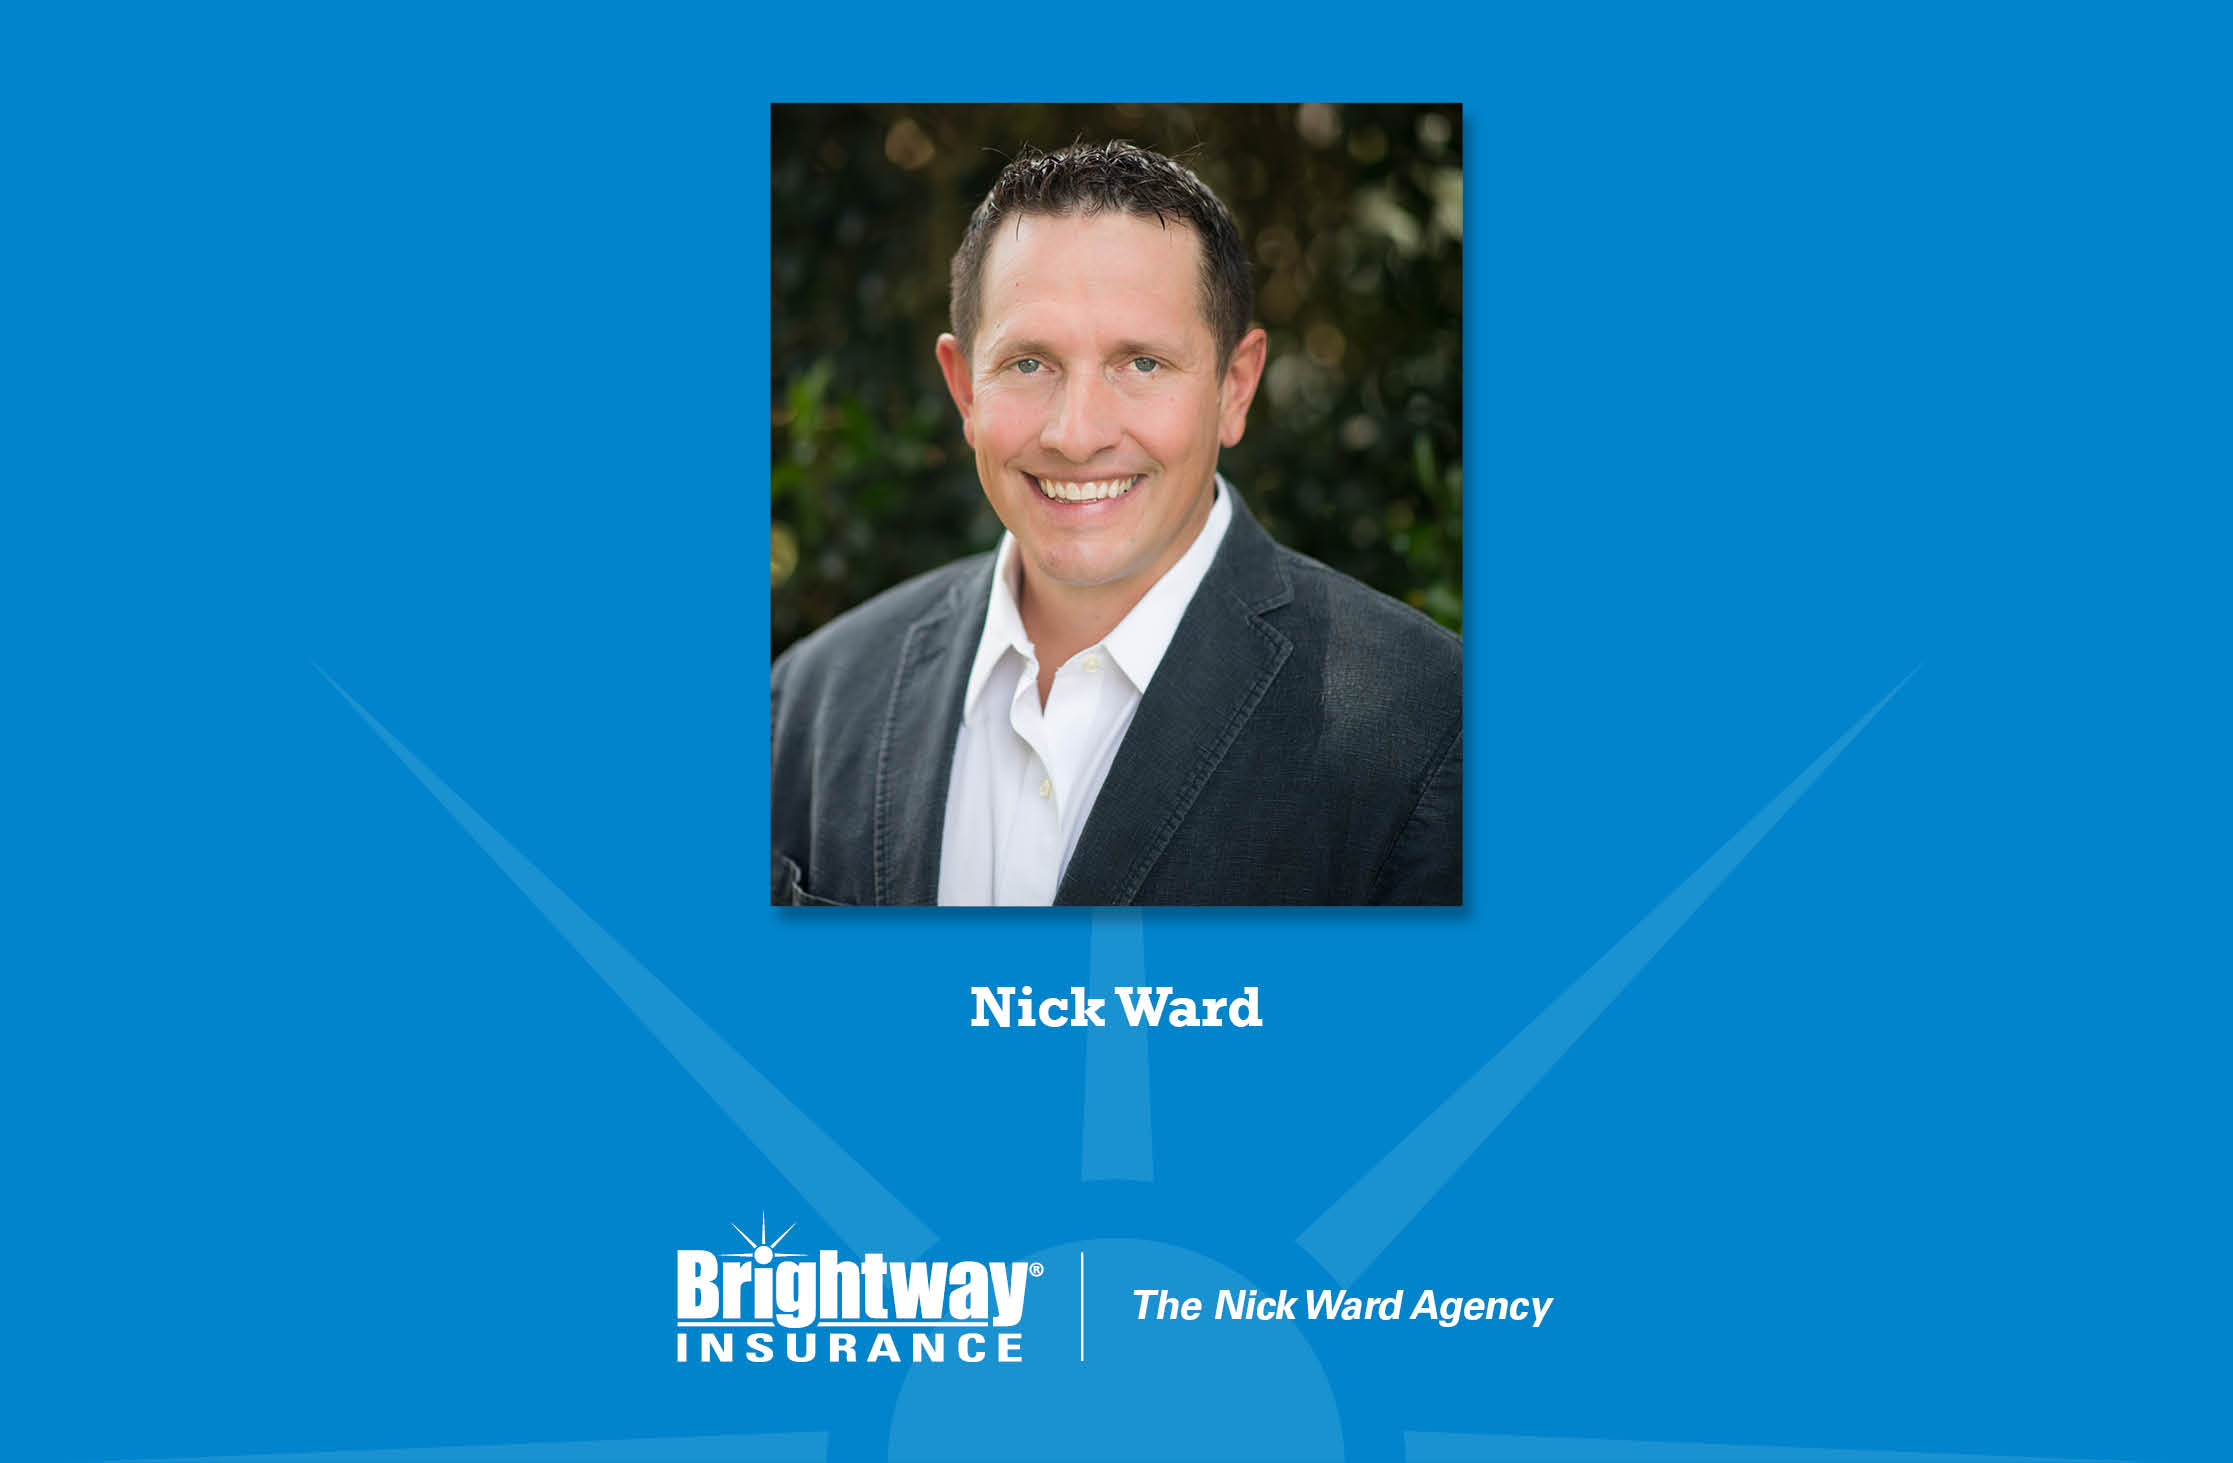 Nick Ward Becomes New Owner Of Brightway Insurance Agency In